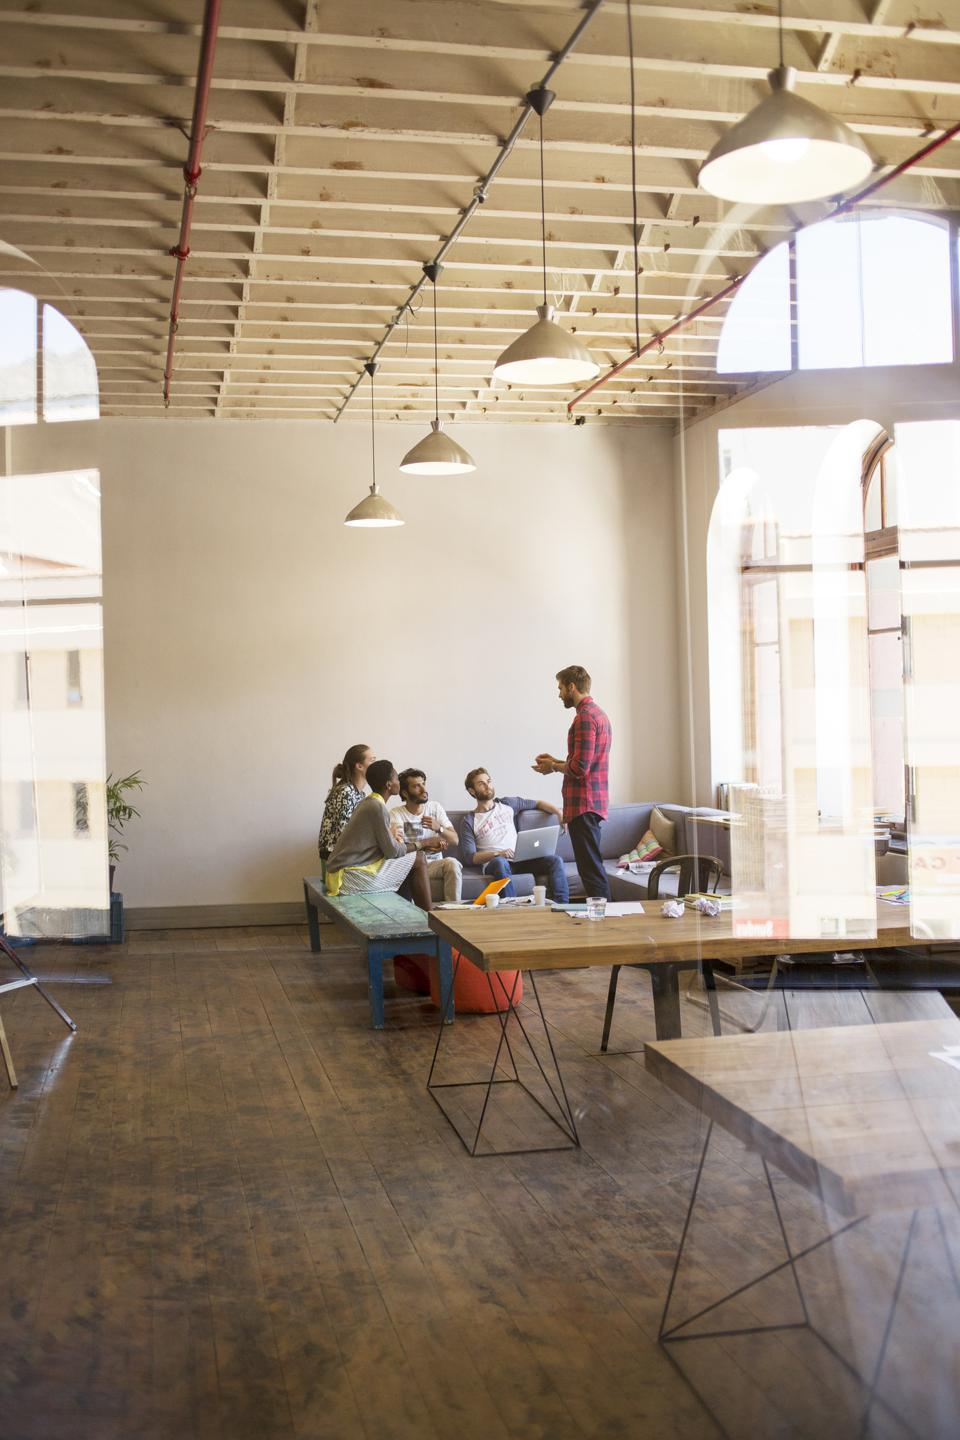 Creative businessman leading meeting in open office